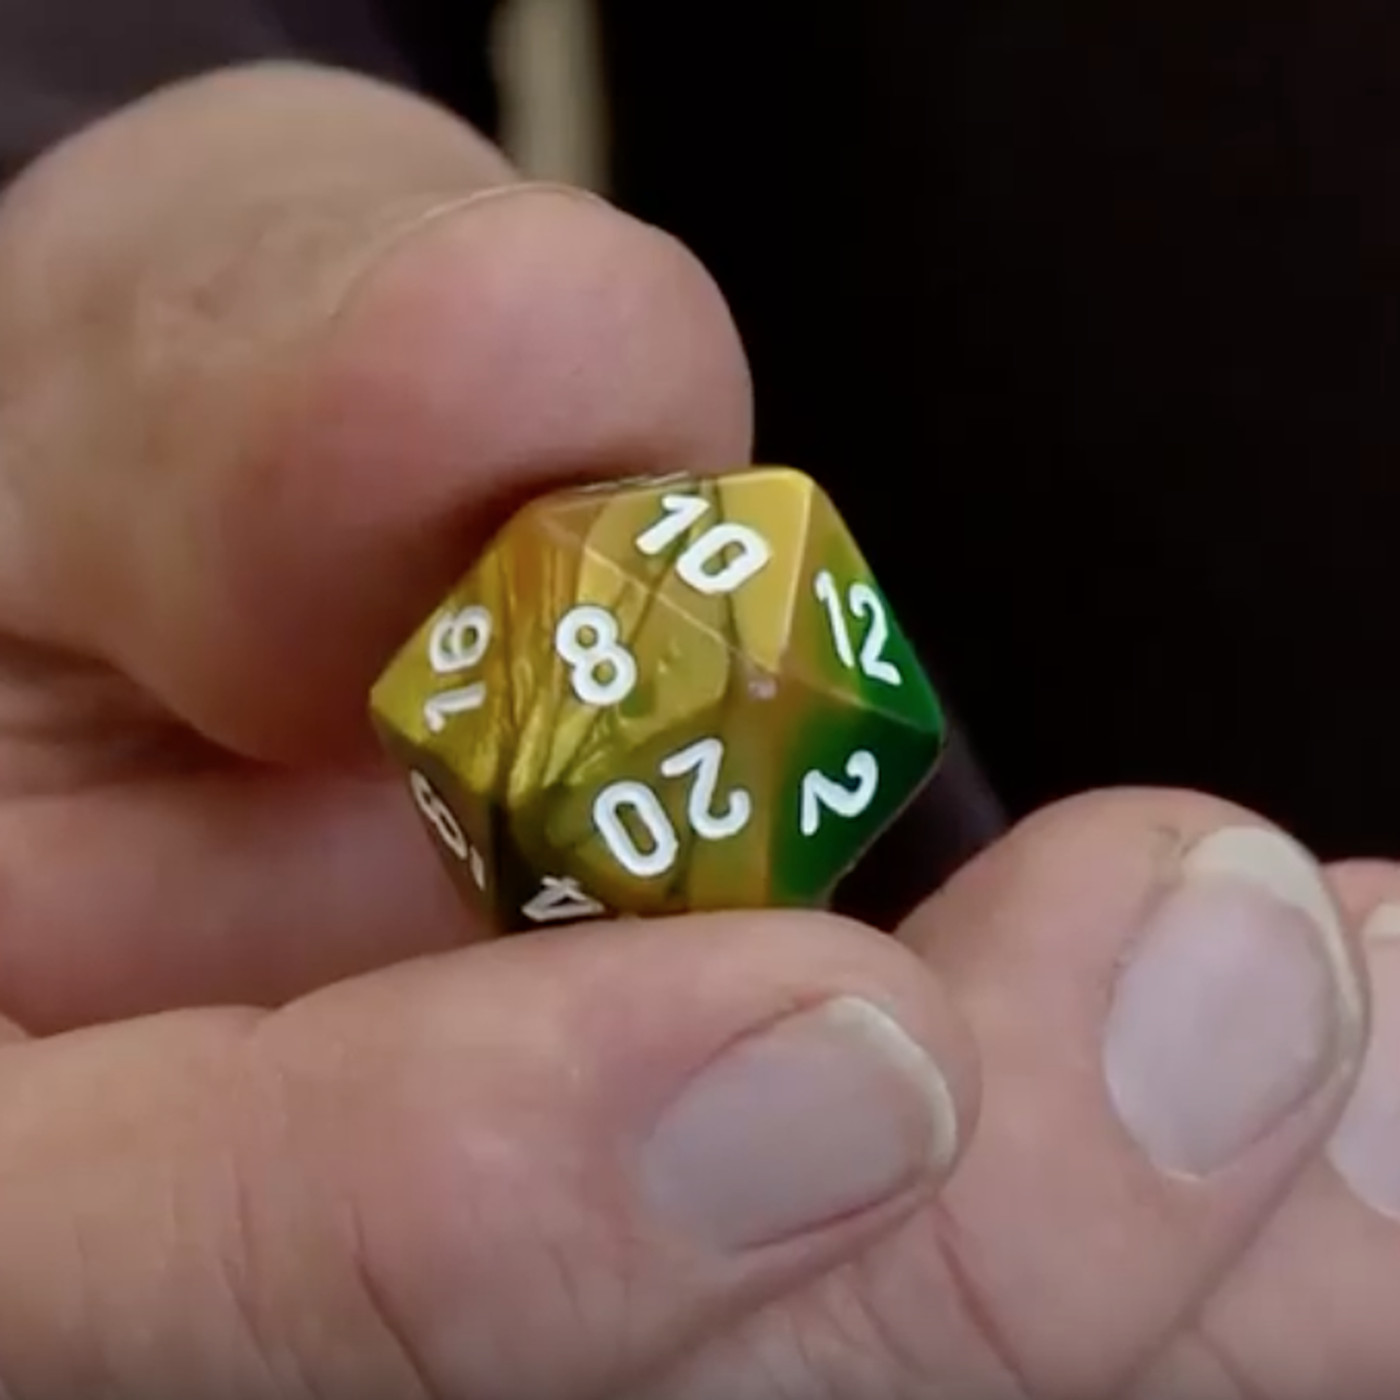 California election resolved with Dungeons & Dragons dice